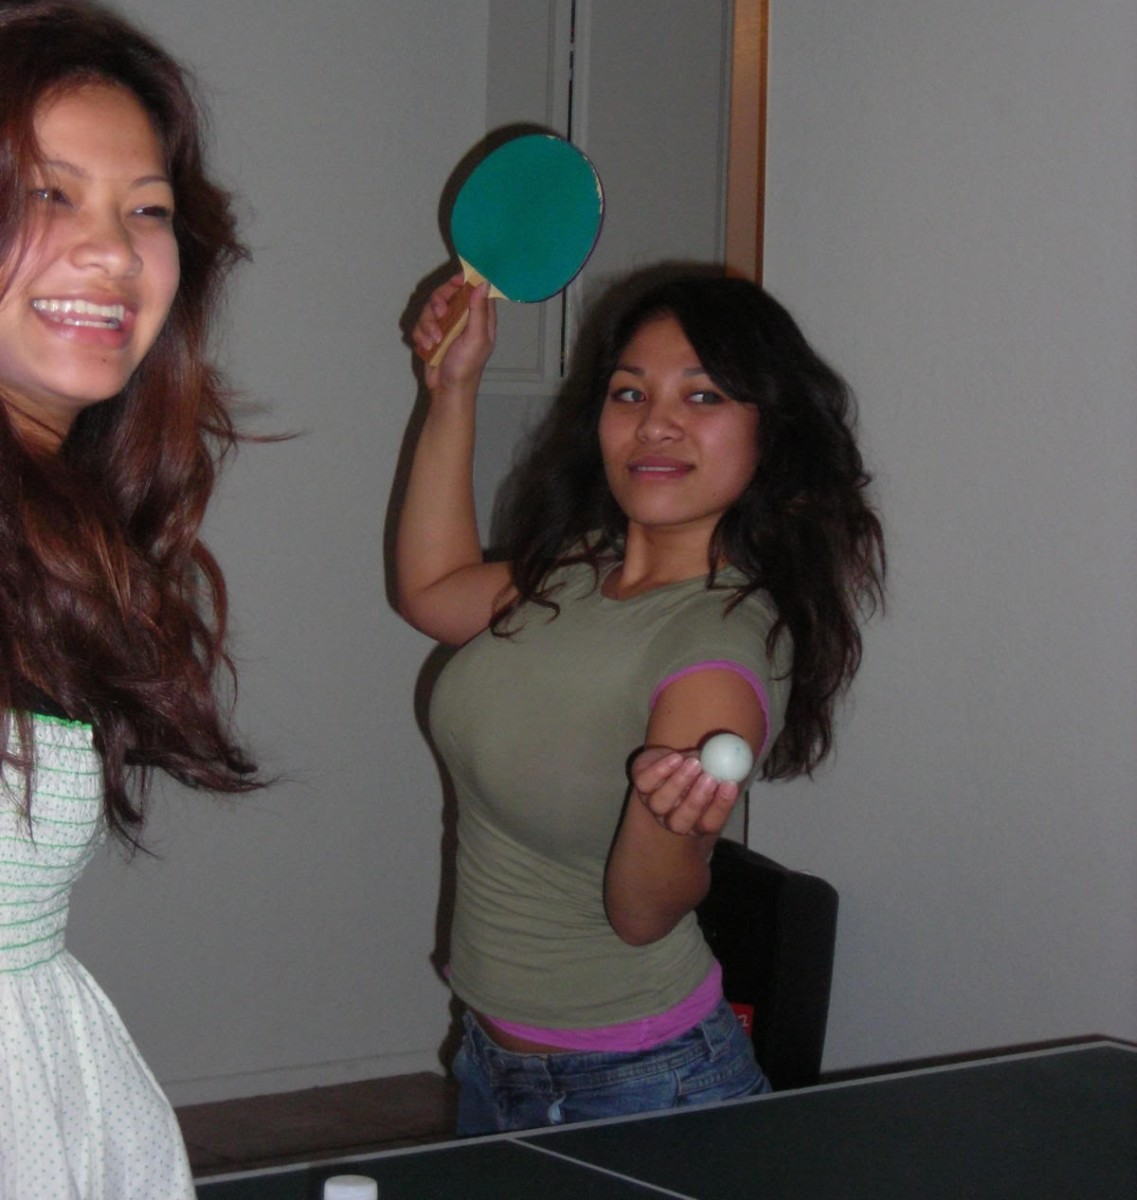 Wow! Fun for the spectators - difference between men and women playing ping pong, photo By darlene86, source: Photobucket